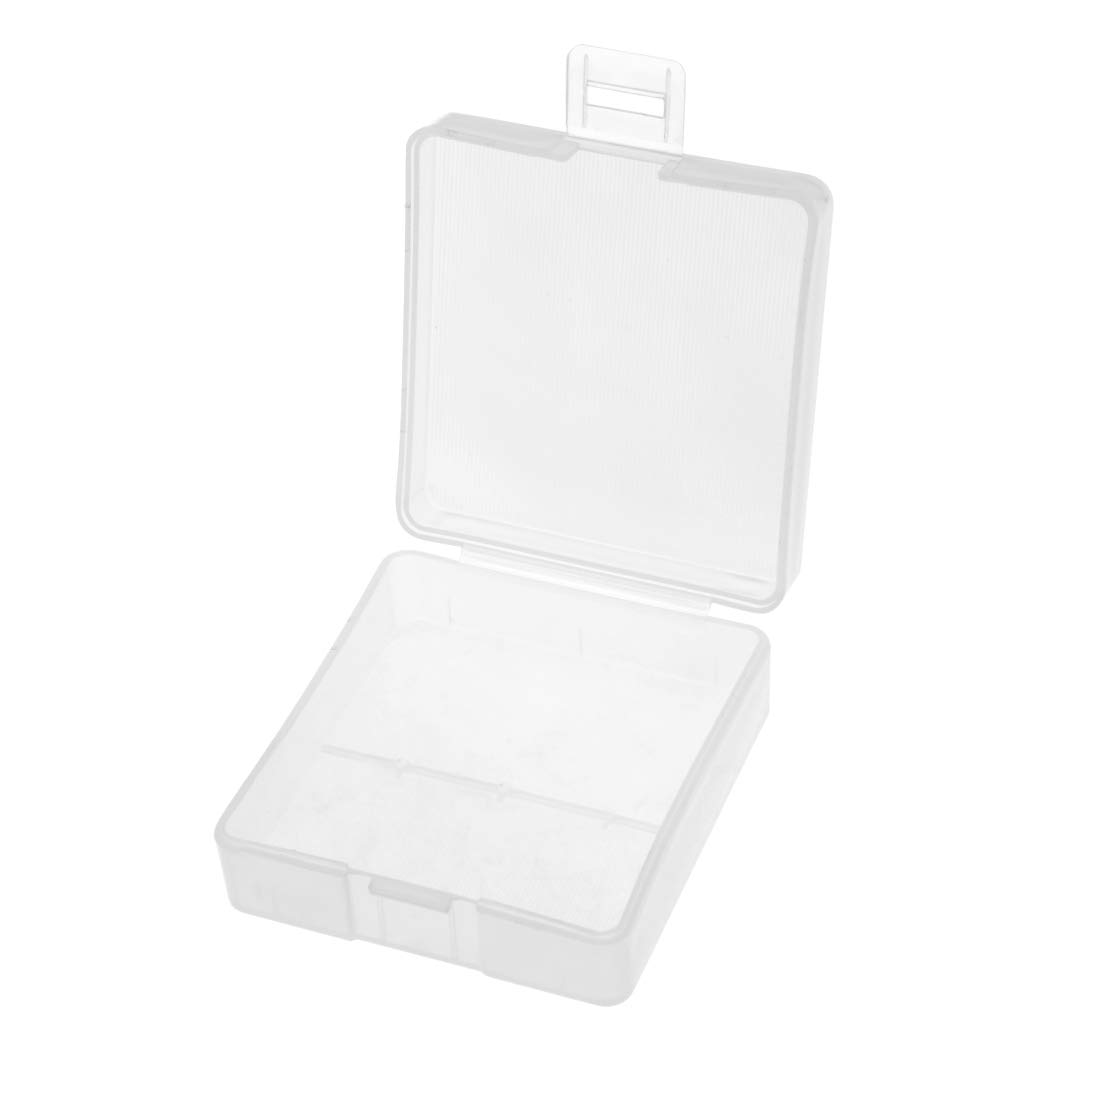 uxcell 10Pcs Battery Storage Case Holder for 2 x 18650 or 4 x RCR123//16340 Batteries Capacity